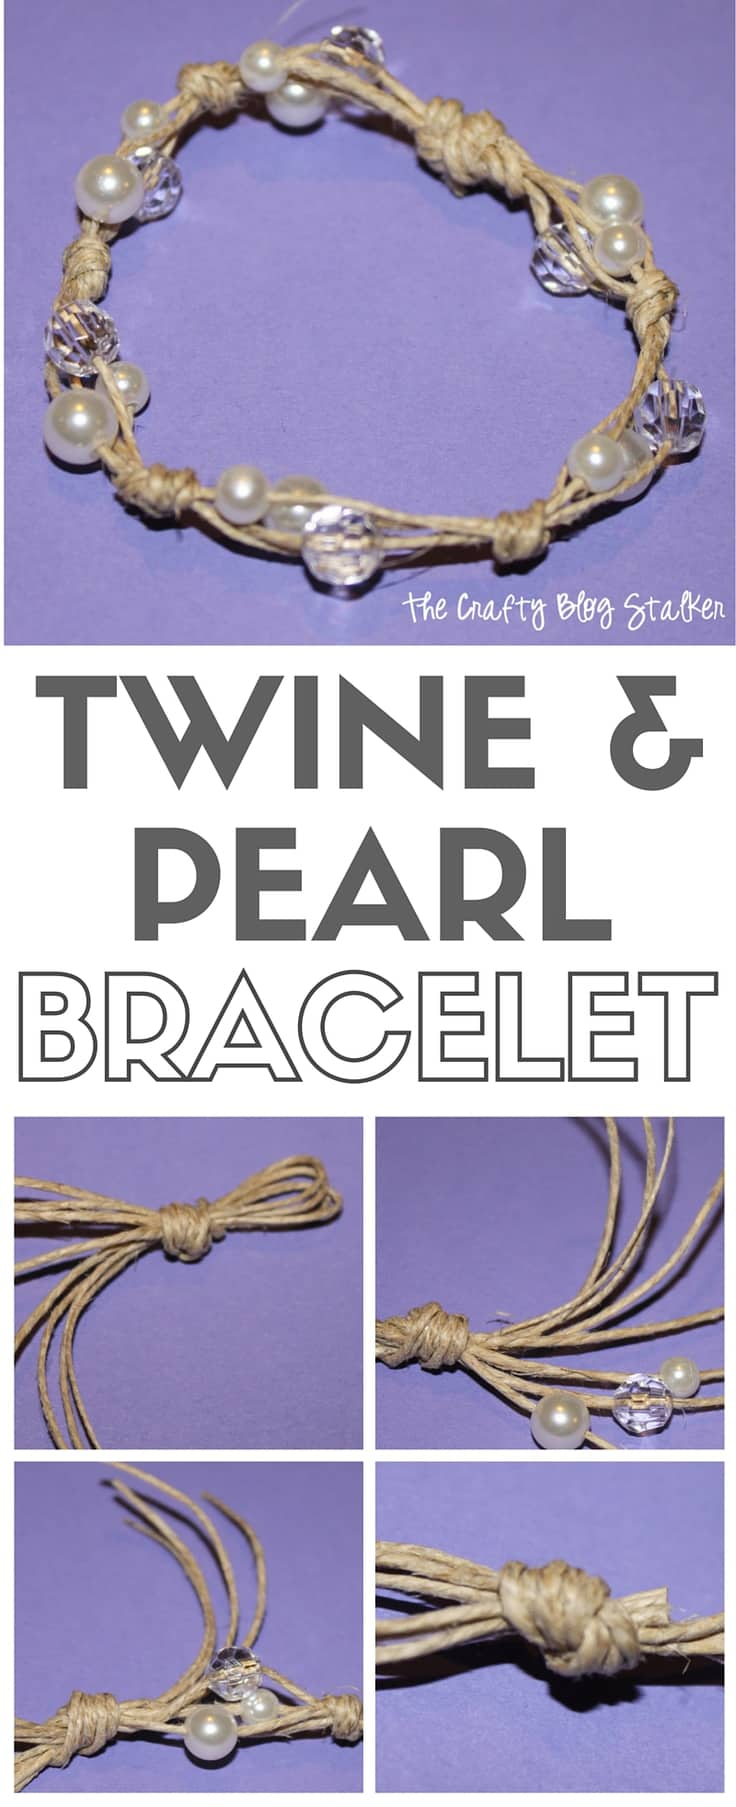 Twine and Pearl Bracelet – The Crafty Blog Stalker - Jute Craft Ideas / DIY Projects with Twine featured on Kenarry.com